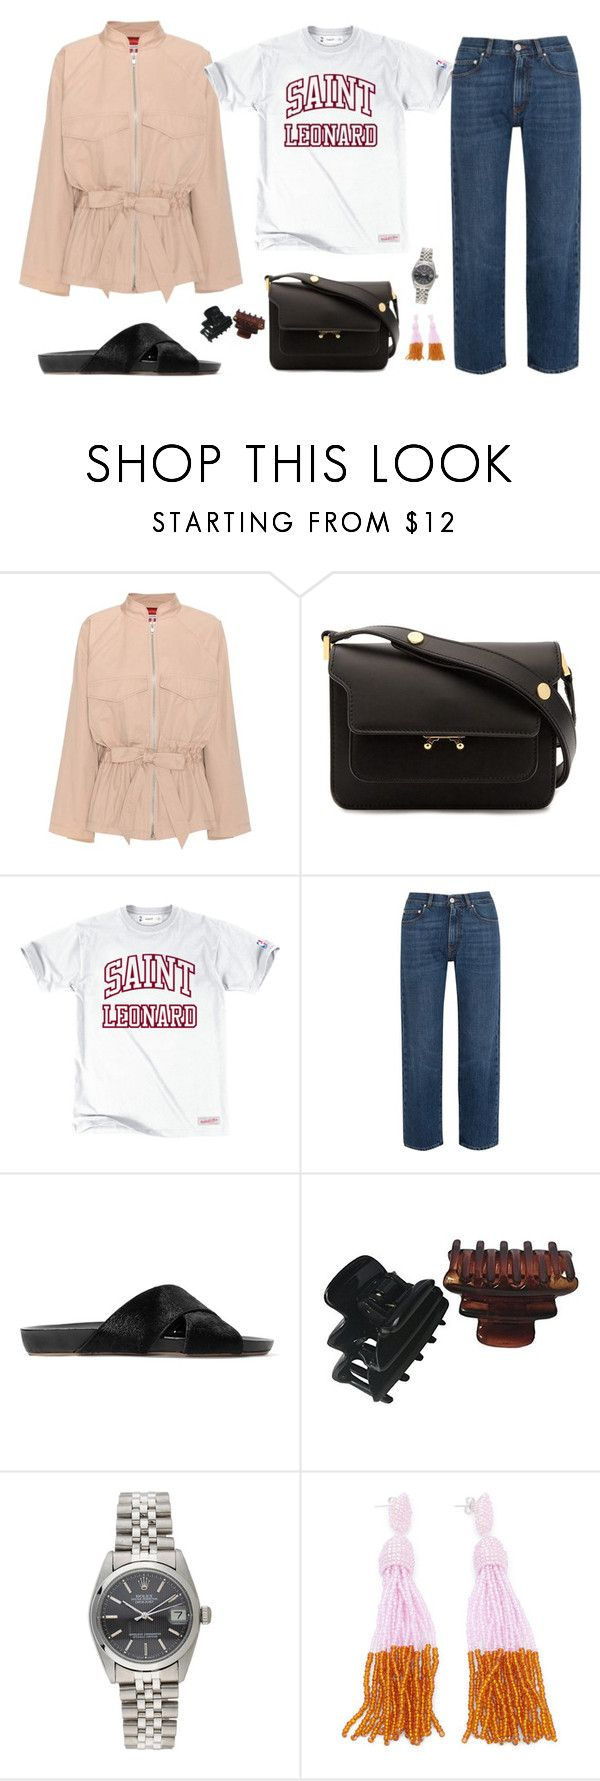 """""""Untitled #1927"""" by mmooa ❤ liked on Polyvore featuring Ganni, Marni, AlexaChung, All Tomorrow's Parties and Rolex"""